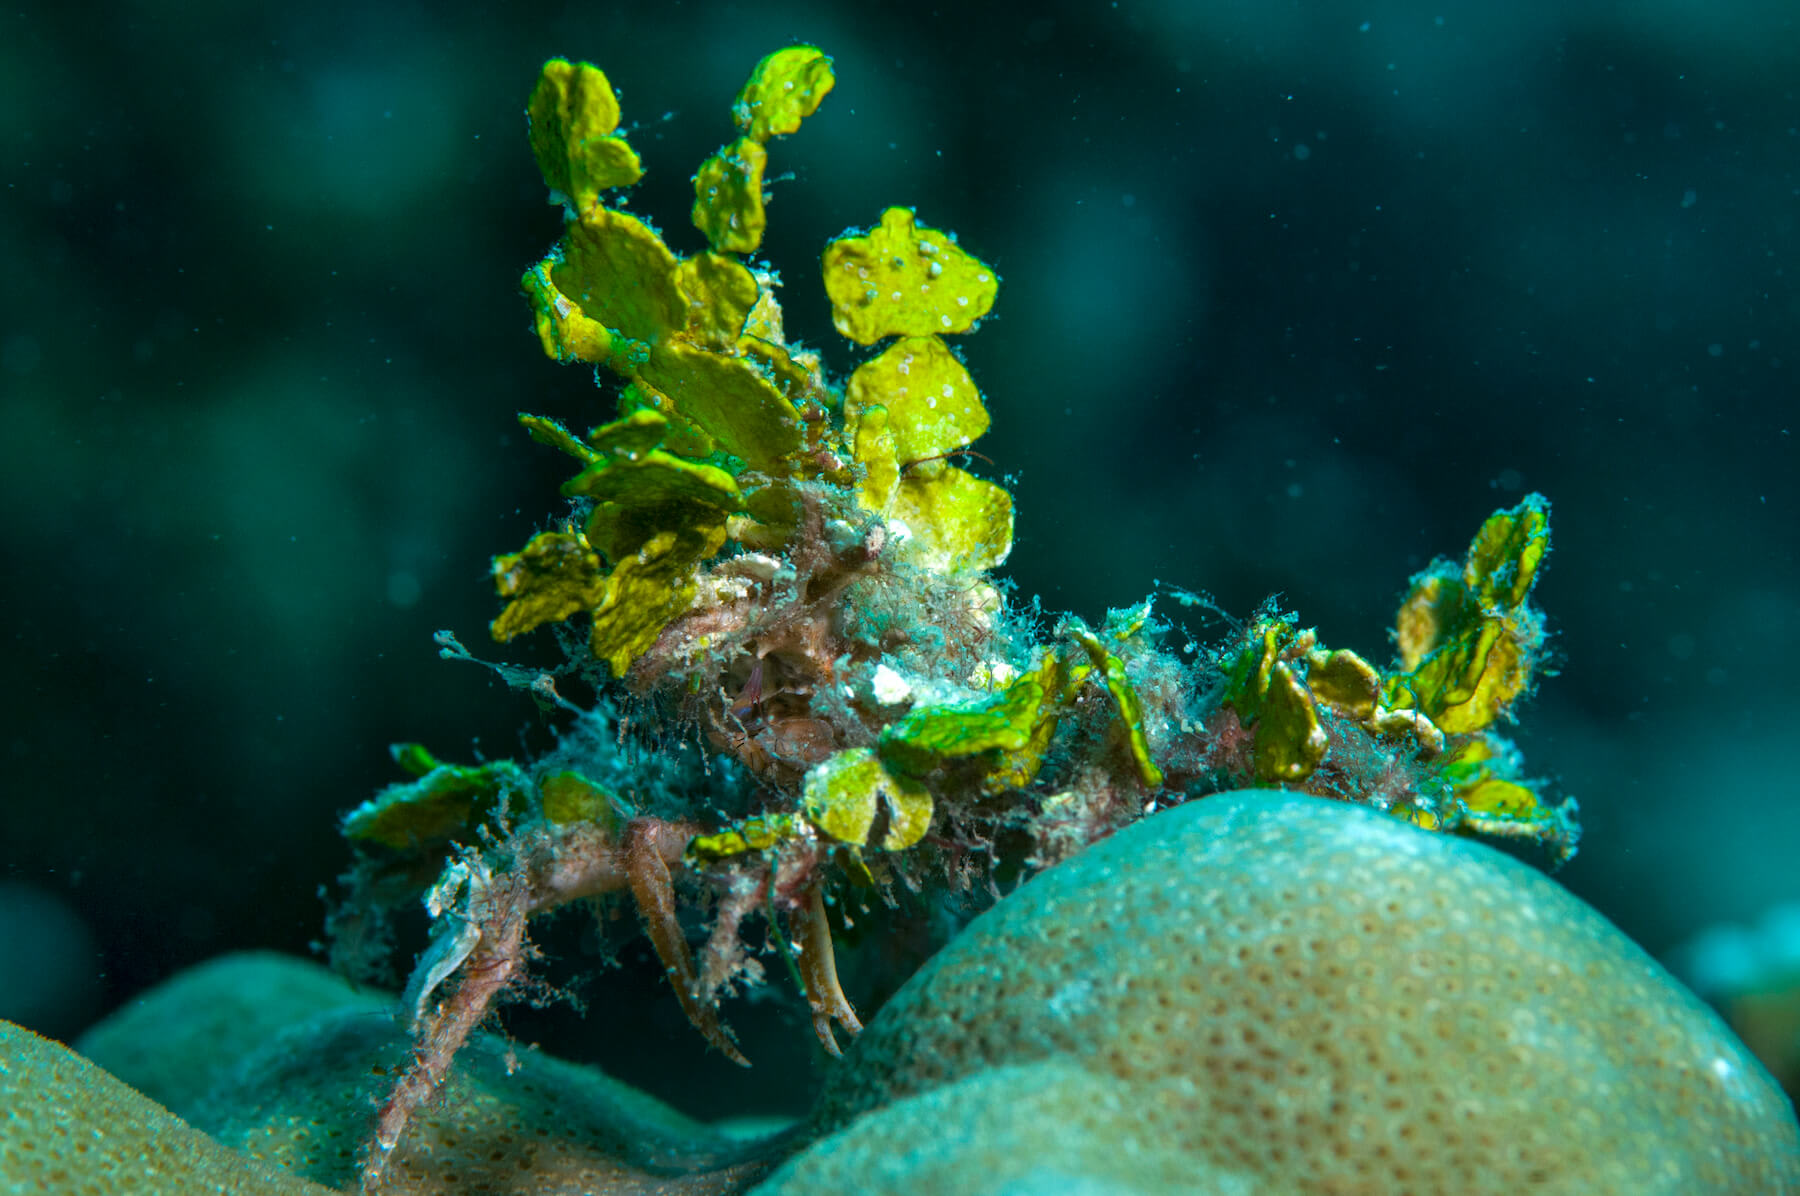 A decorator crab impersonating a clump of calcareous Halimeda algae. If you are unable to spot its head or eyes, that is mission accomplished for this crab.